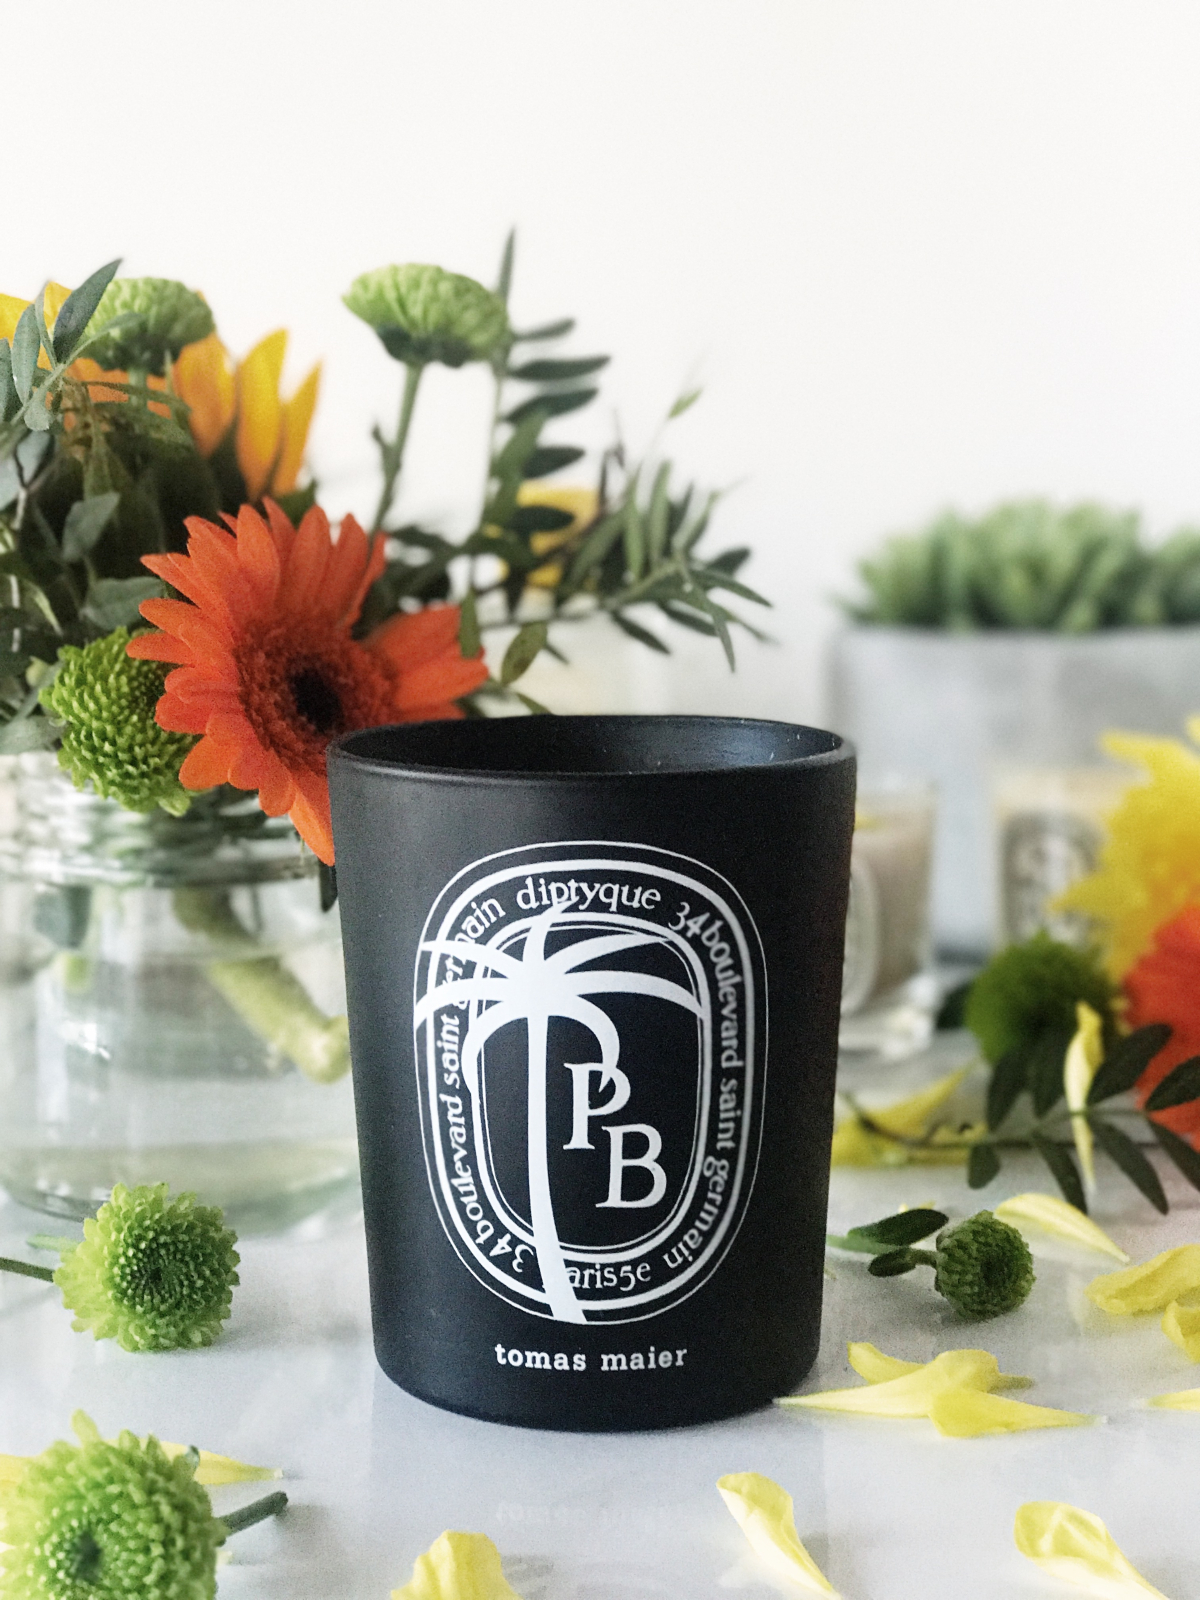 Diptyque Tomas Maier Palm Beach Candle Review